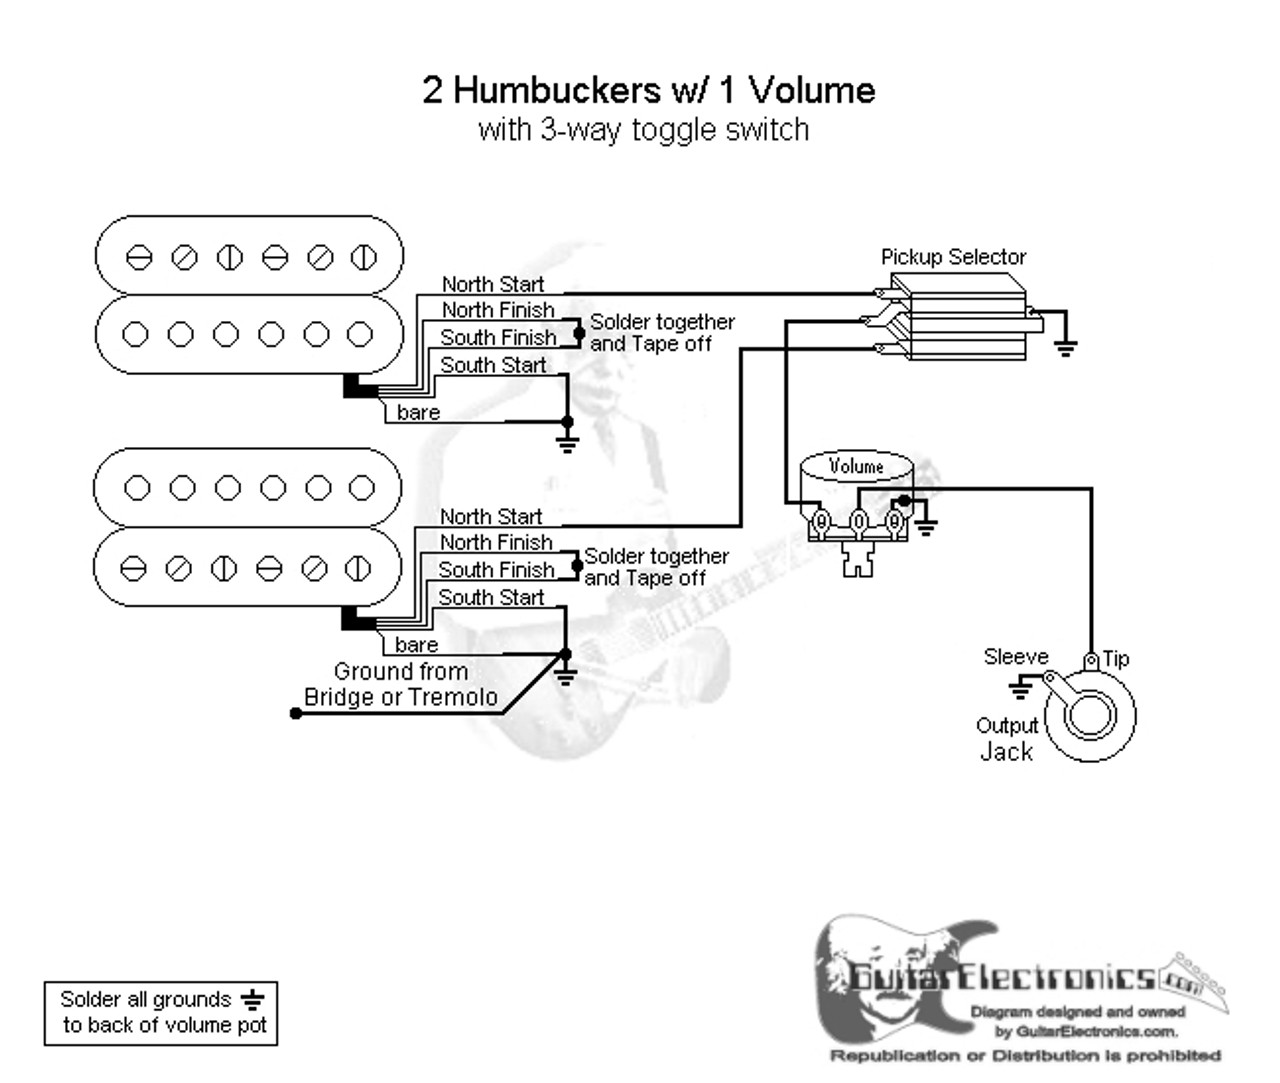 hum 2 pickup wiring diagrams 2 humbuckers 3 way toggle switch 1 volumewd2hh3t10 00 38554 1470694344 jpg c u003d2 [ 1280 x 1083 Pixel ]